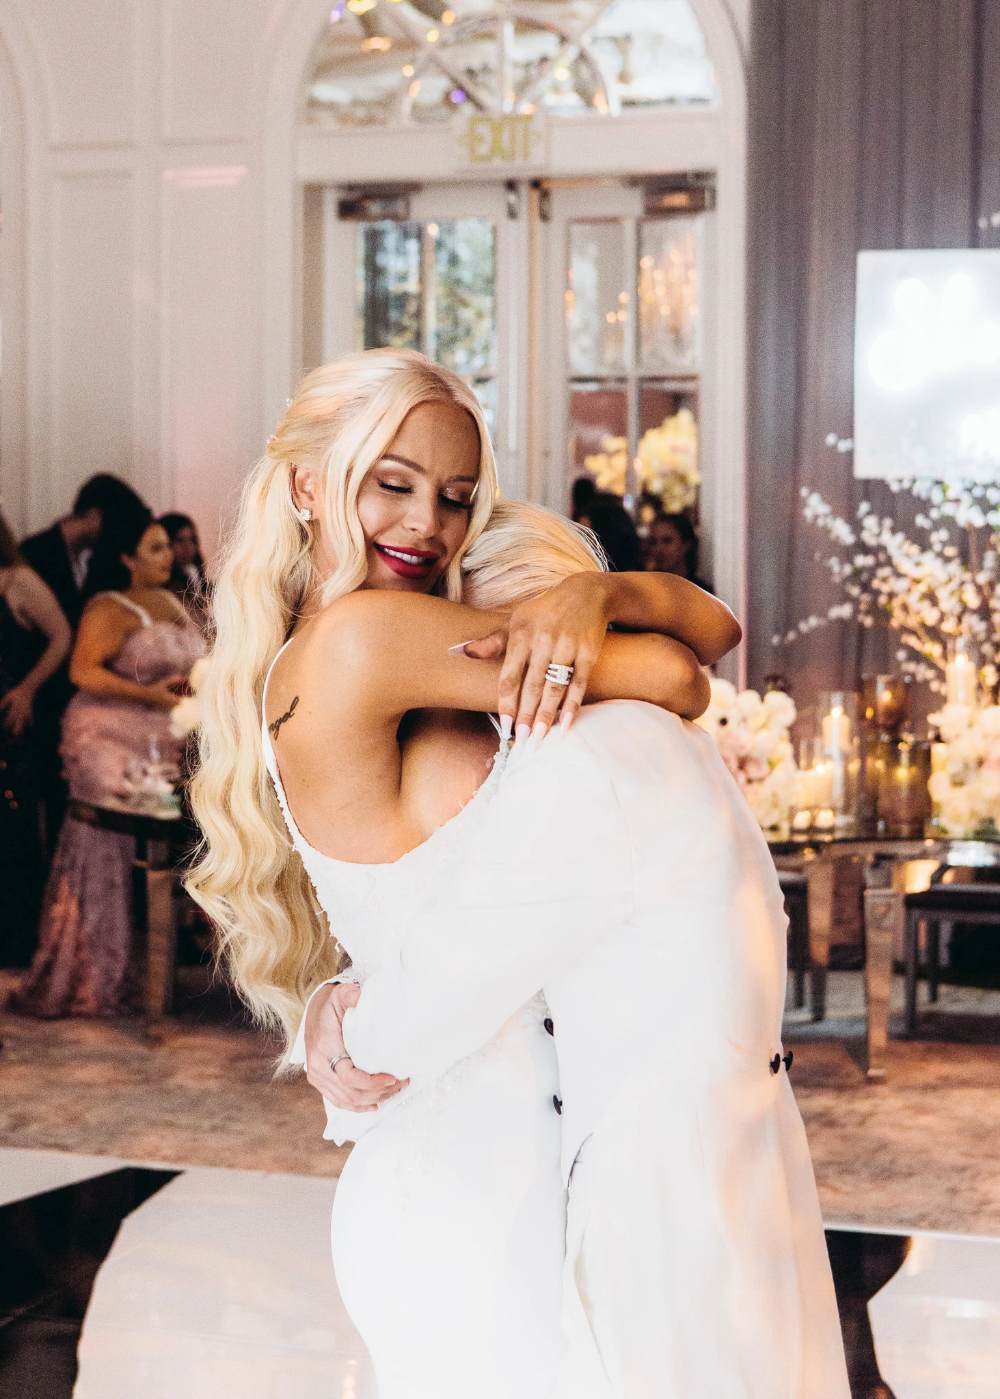 At The Wedding Of Gigi Gorgeous And Nats Getty Published 2019 Gorgeous Celebrity Weddings Beauty Youtubers